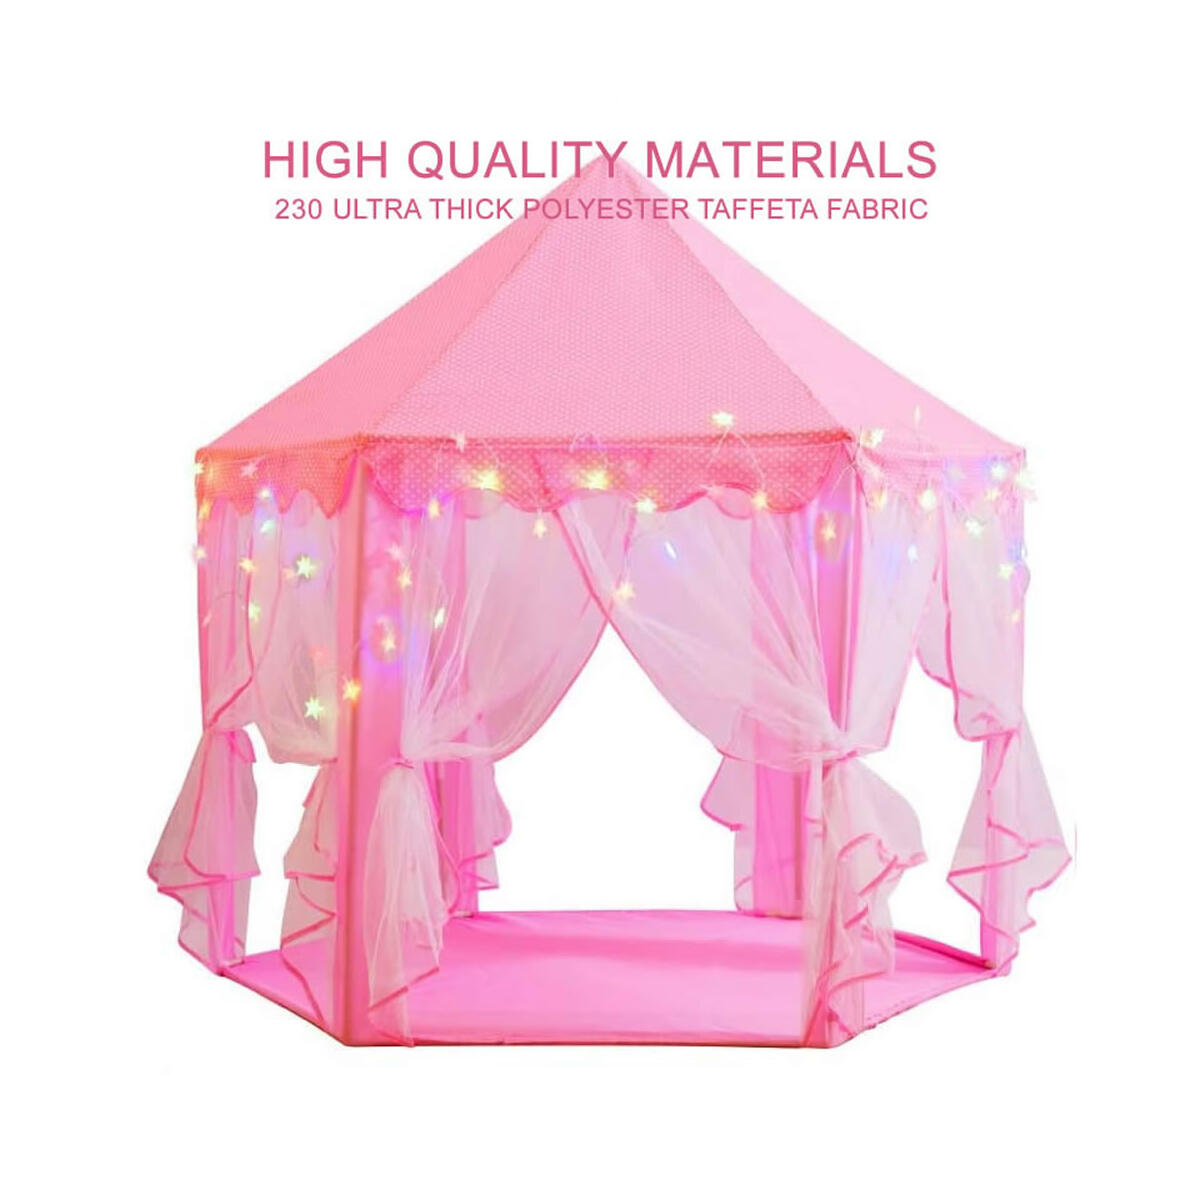 Princess Castle Playhouse Tent for Girls with 10 ft. LED Star Lights and 18 Pieces Hair Clips - Large 55